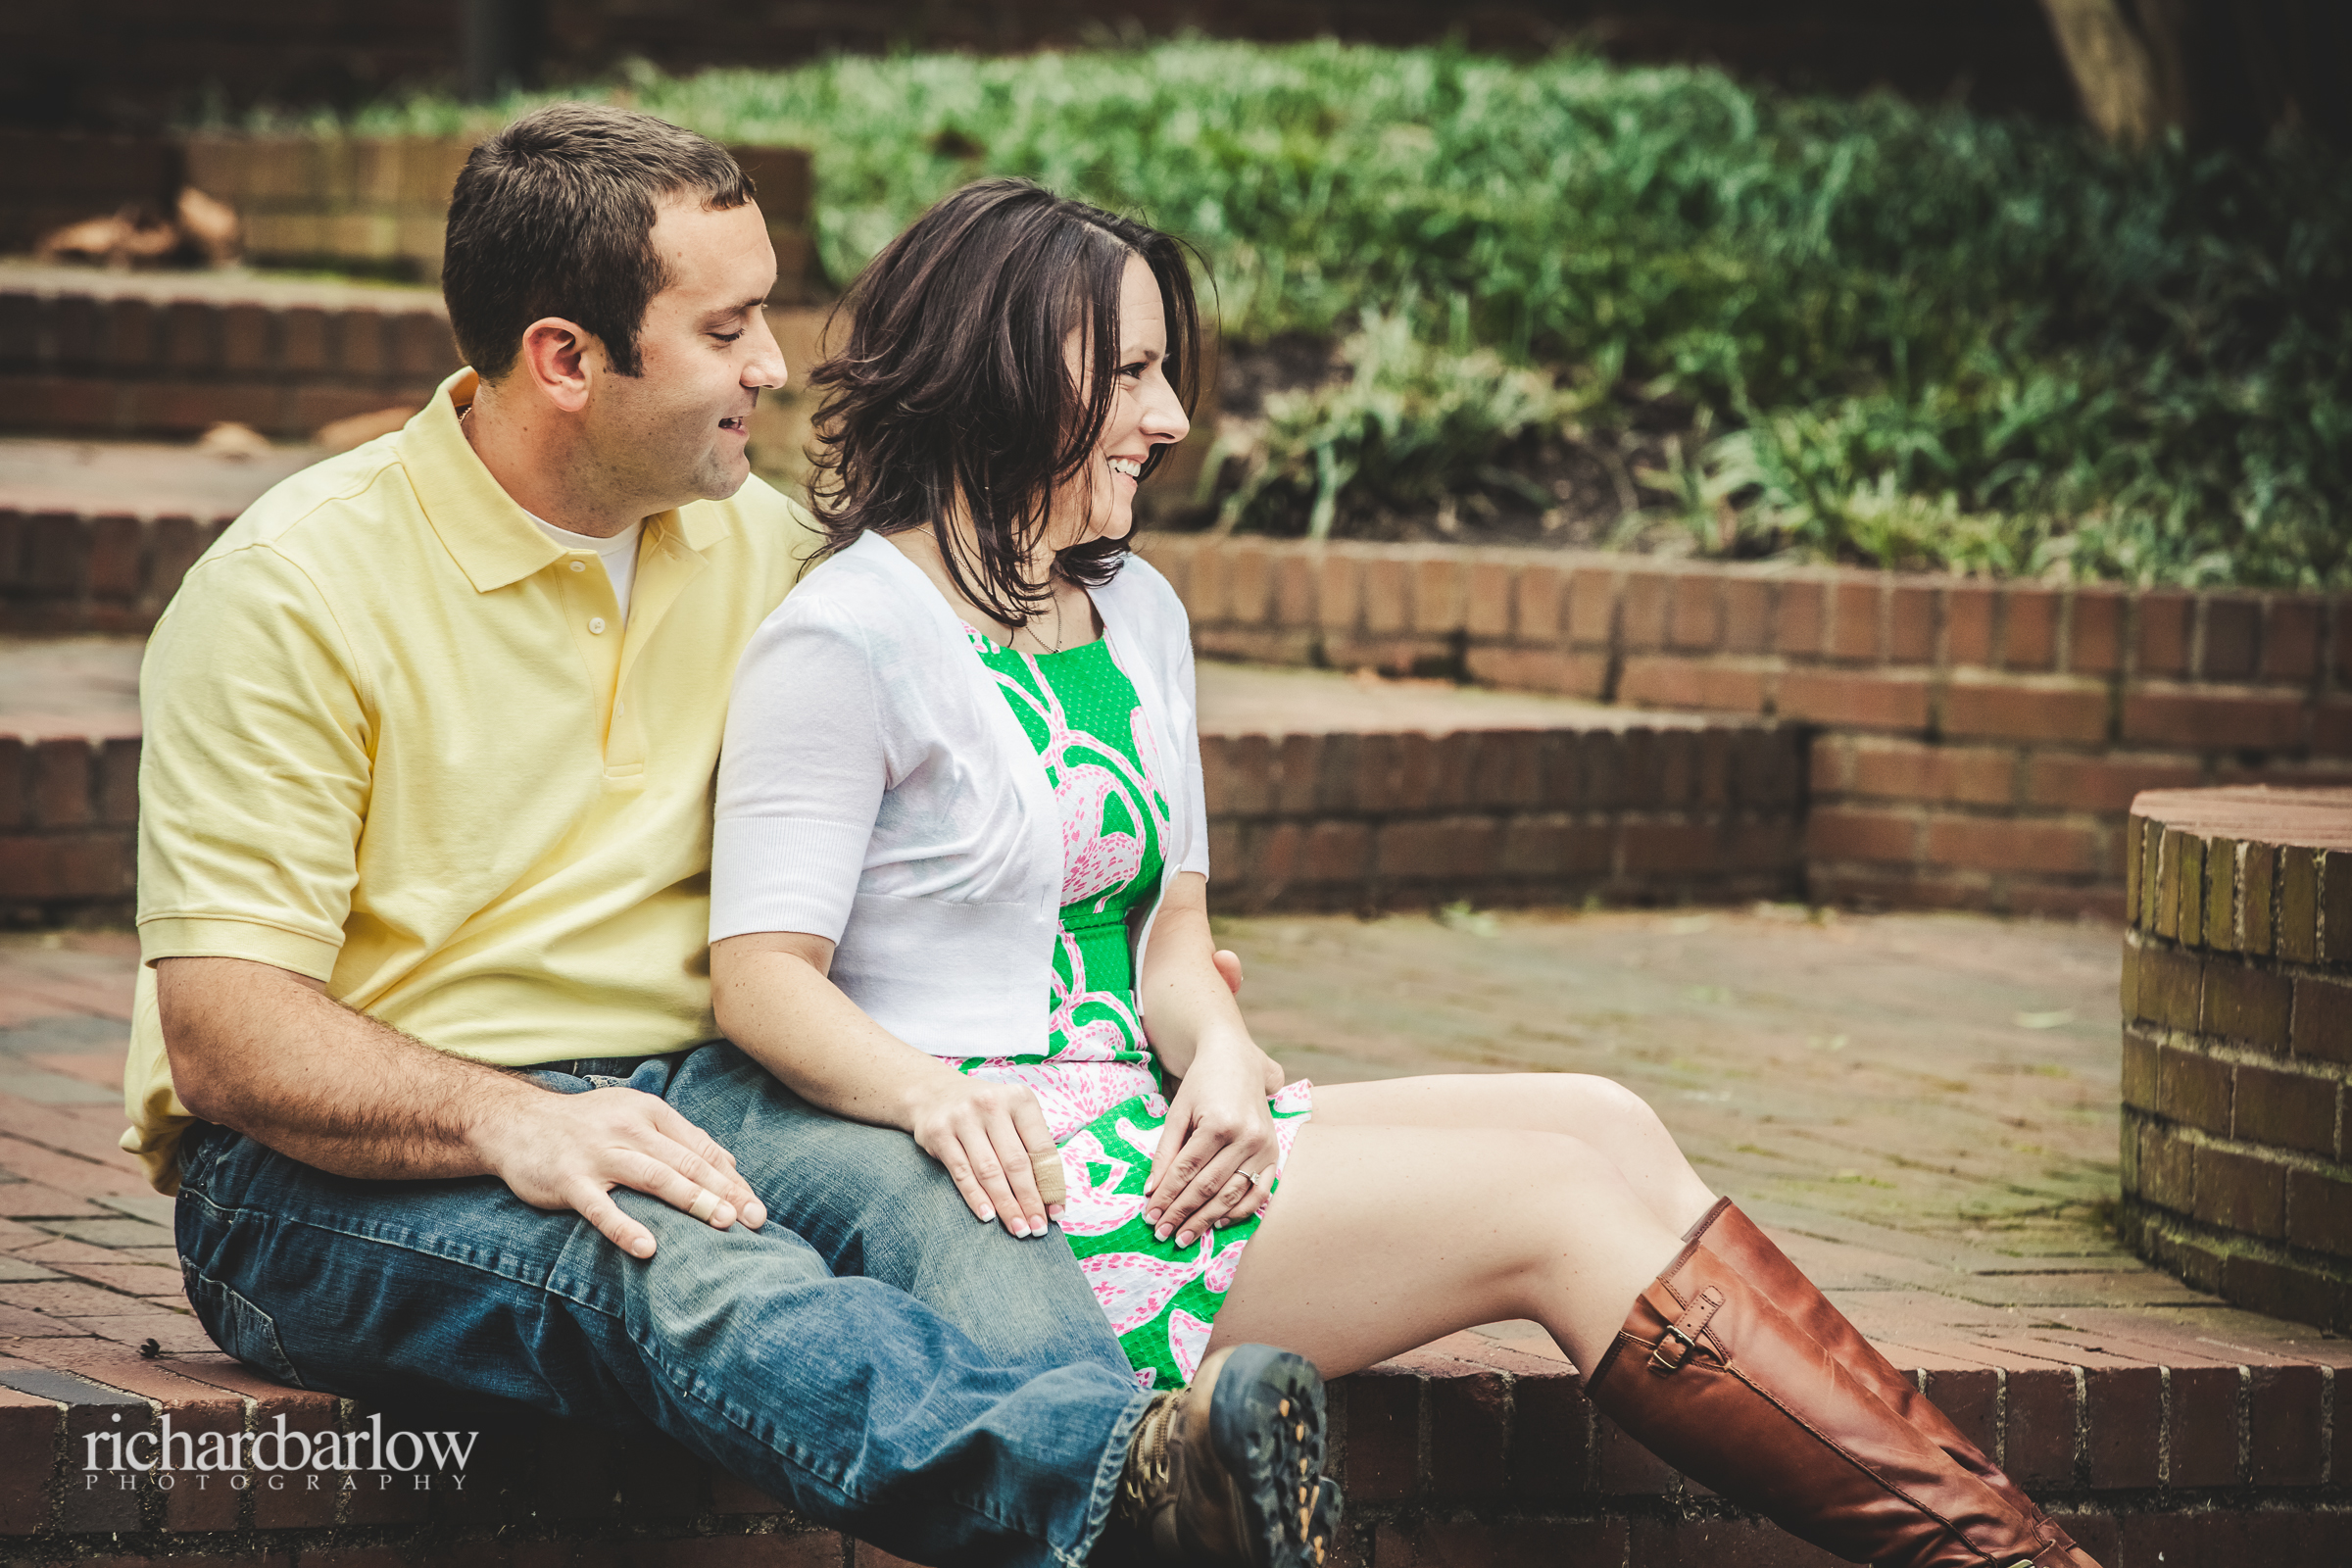 richard barlow photography - Jason and Karen Engagement Session NC State-4.jpg